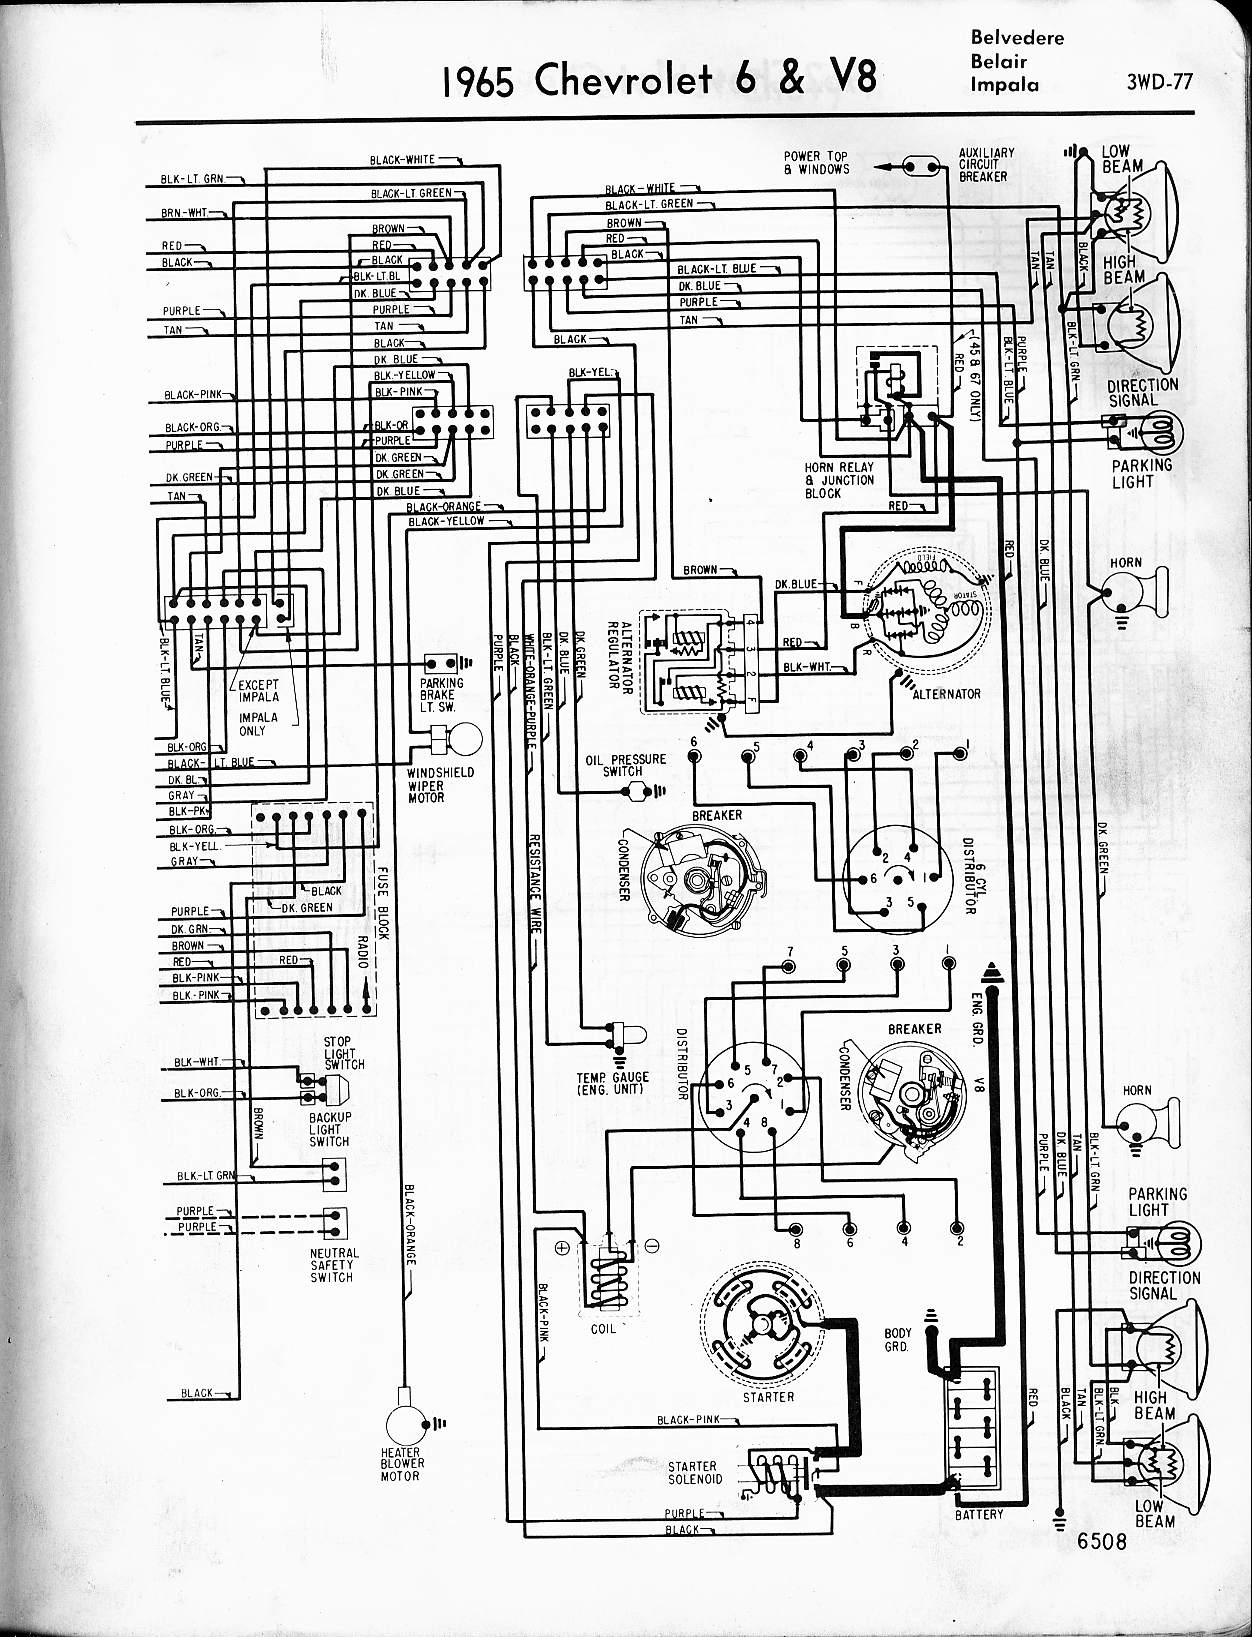 MWireChev65_3WD 077 chevy diagrams 1963 impala electrical diagram at soozxer.org